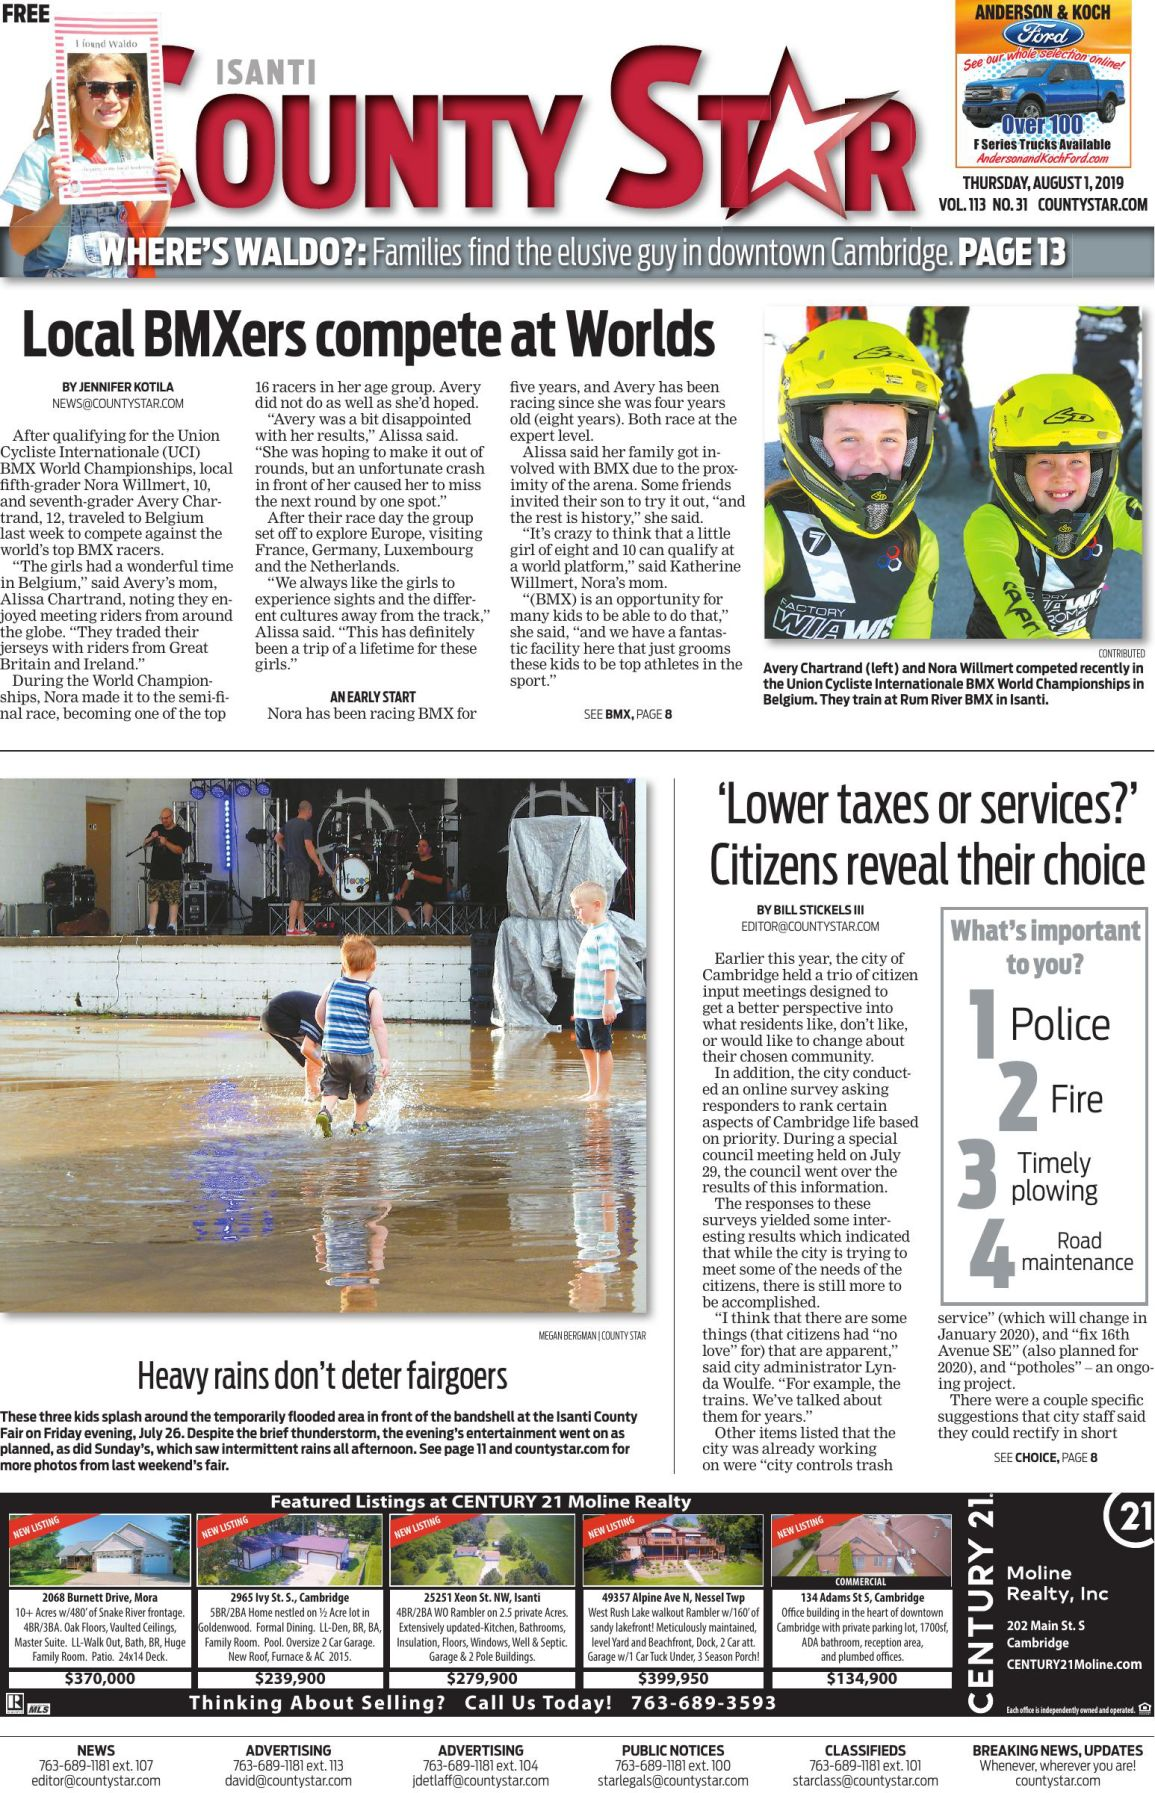 Isanti County Star e-edition August 1, 2019